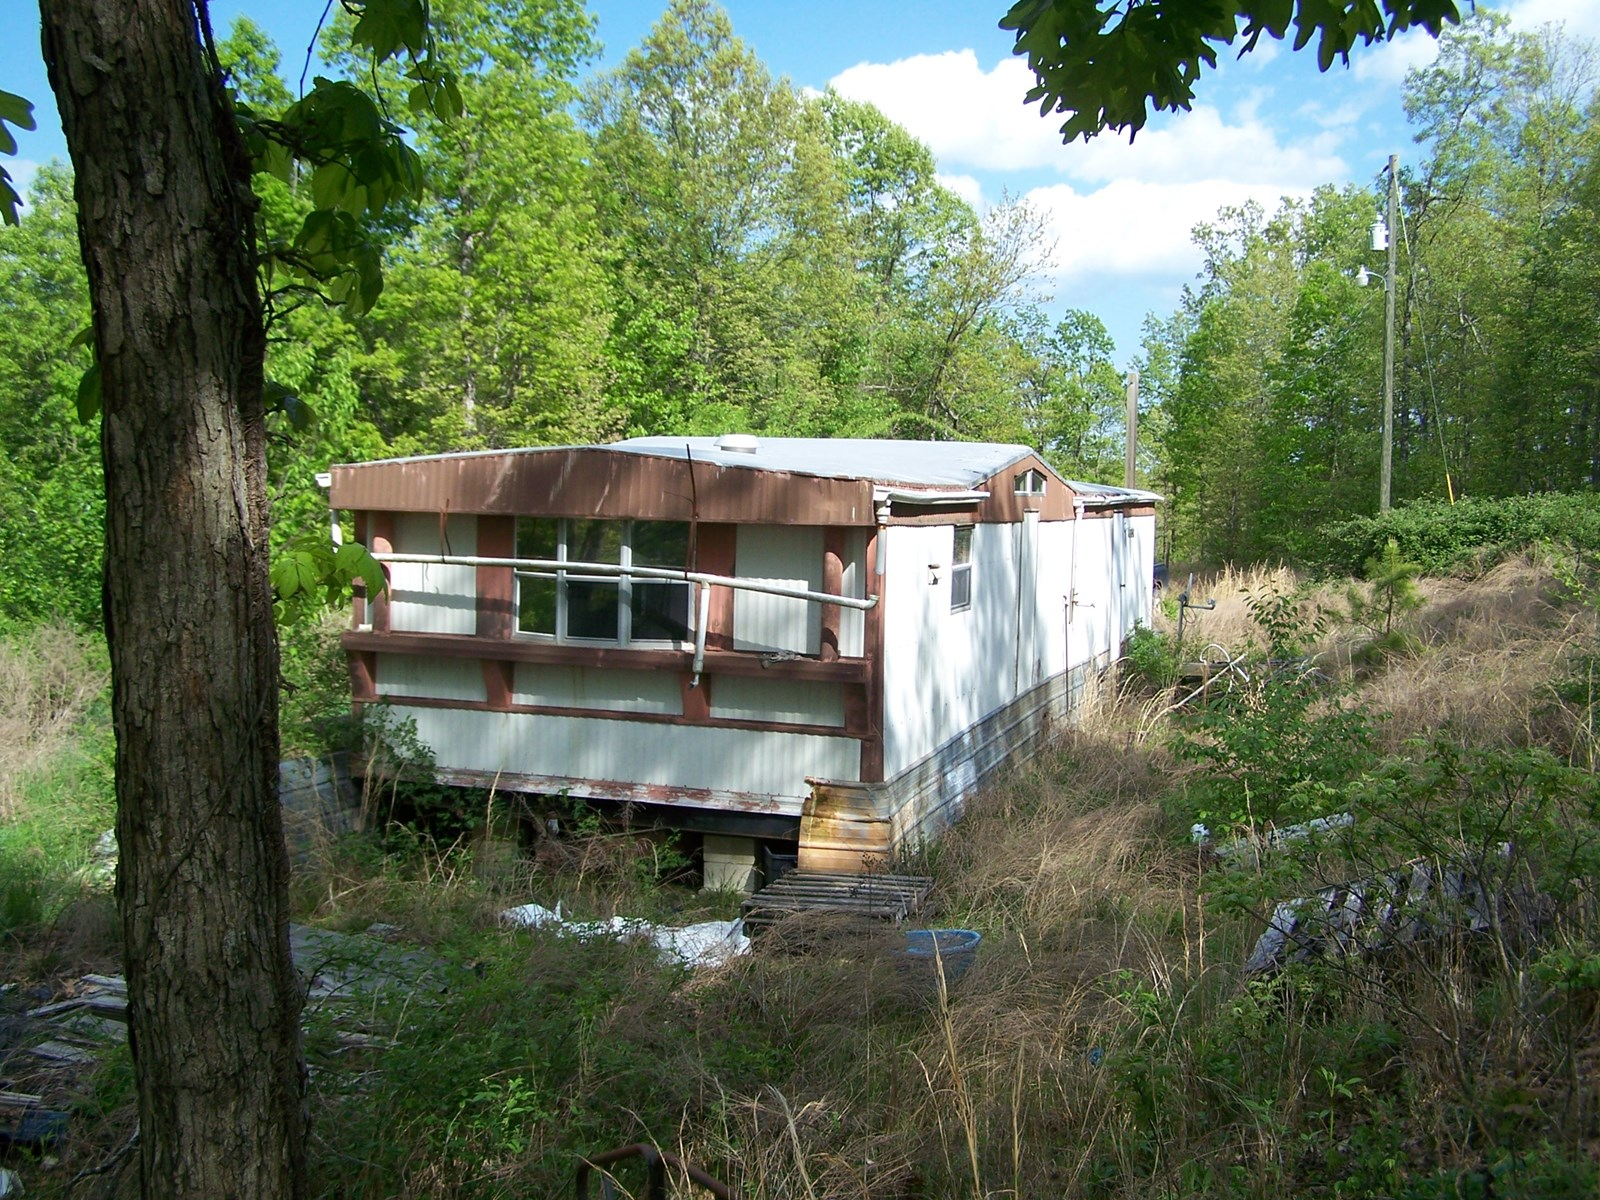 Arkansas Recreational Land For Sale with Mobile Home.